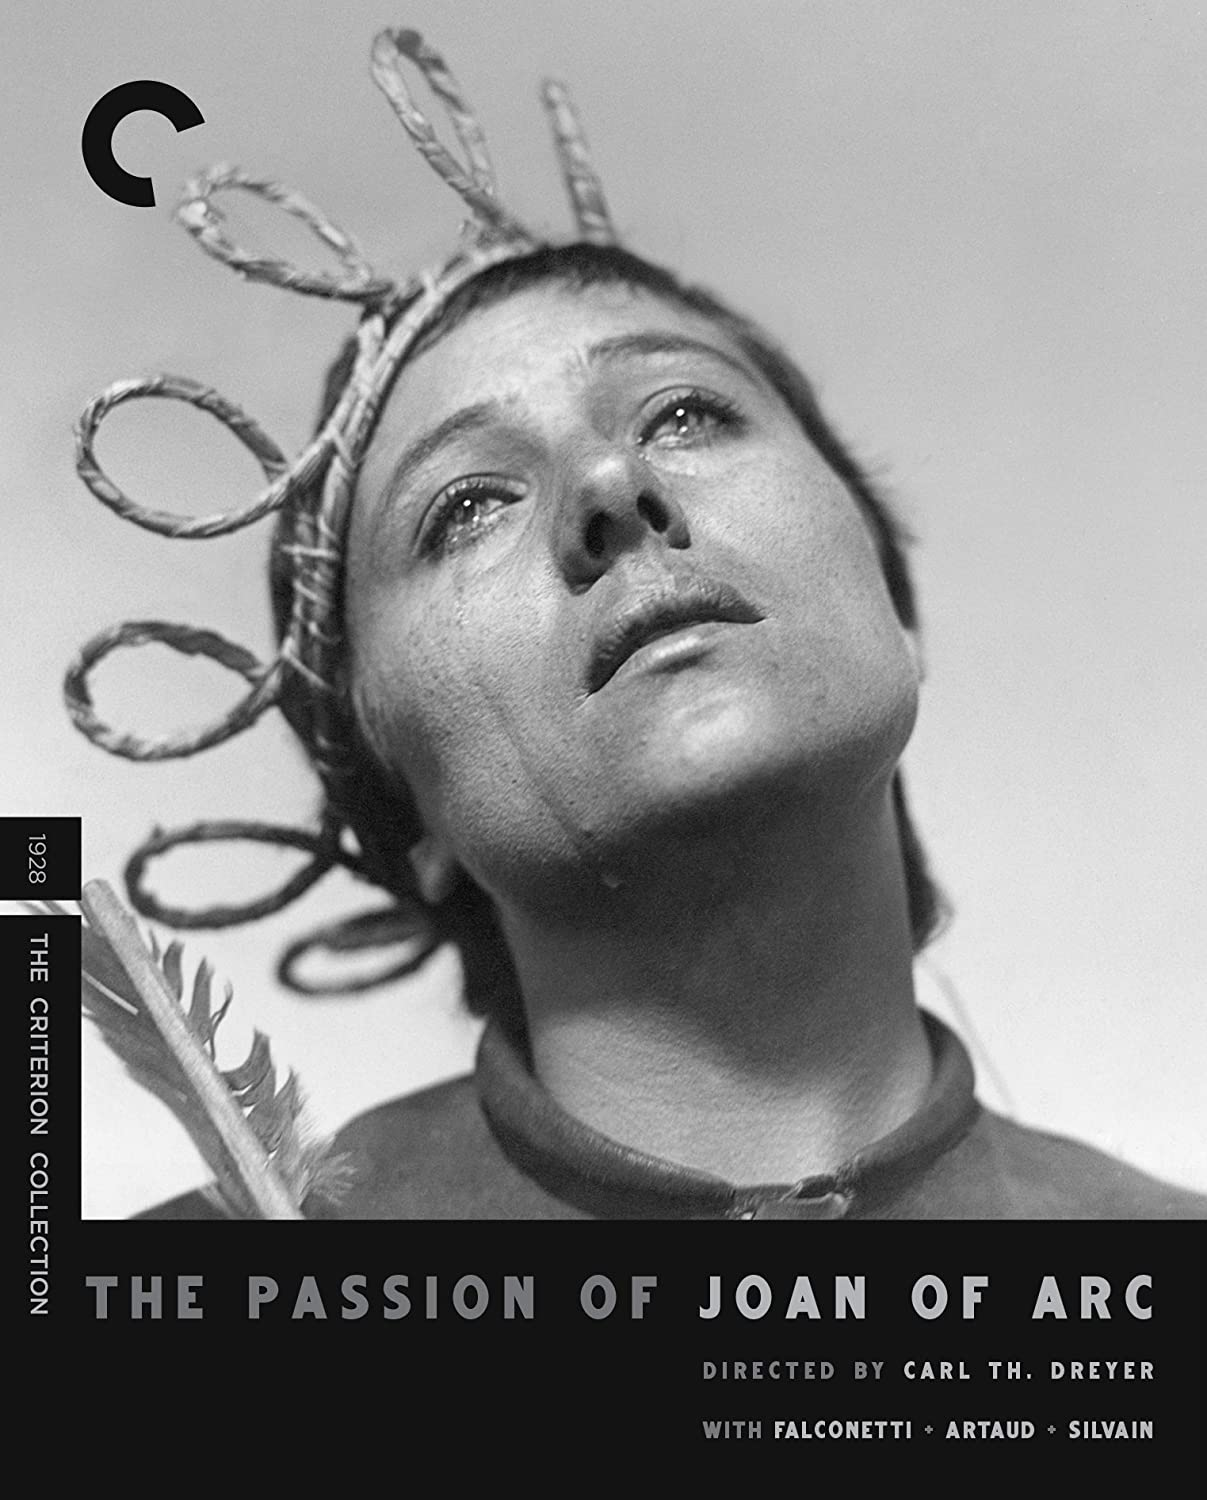 Amazon Com The Passion Of Joan Of Arc The Criterion Collection Blu Ray Renée Falconetti Carl Th Dreyer Movies Tv